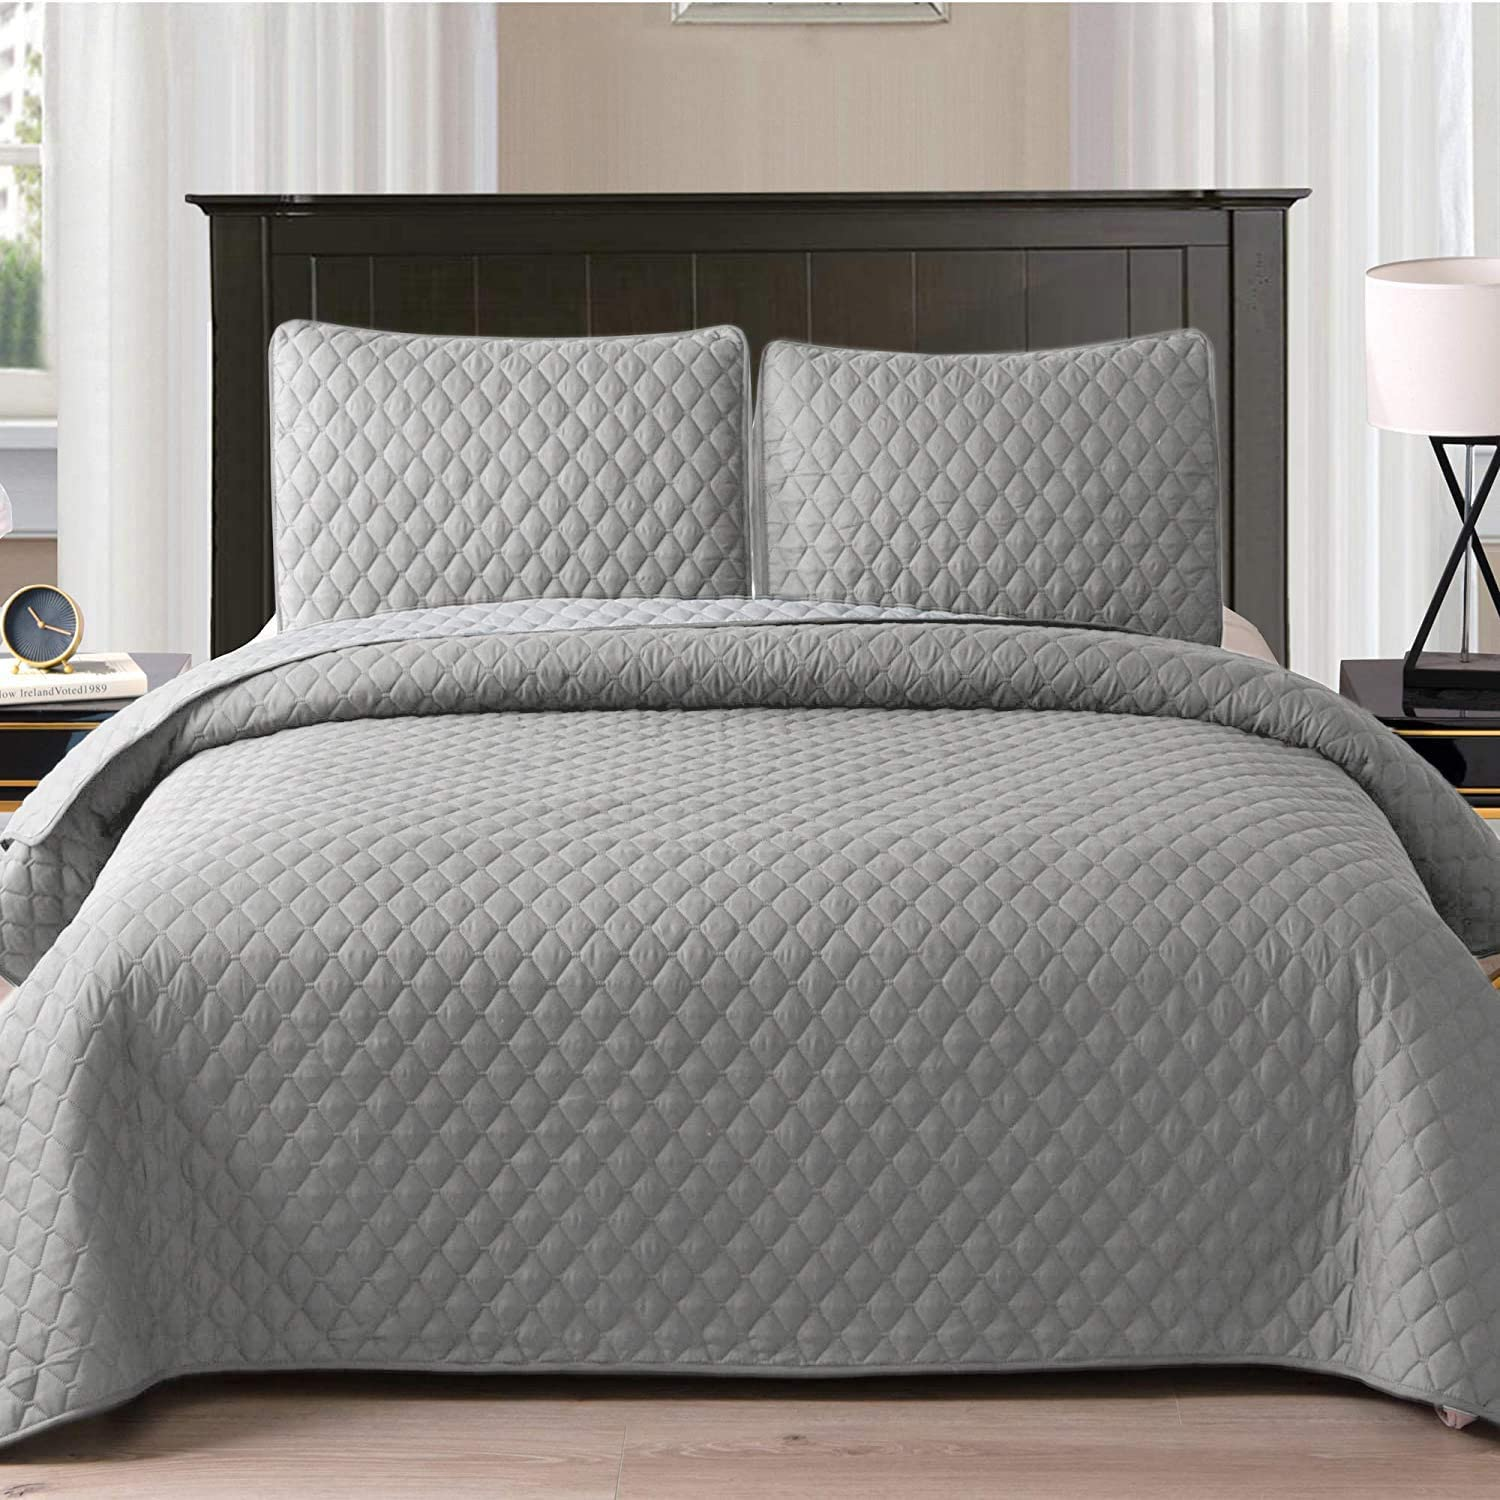 Exclusivo Mezcla Ultrasonic 3-Piece Full/Queen Size Quilt Set with Pillow Shams, Lightweight Bedspread/Coverlet/Bed Cover - (Light Grey, 92